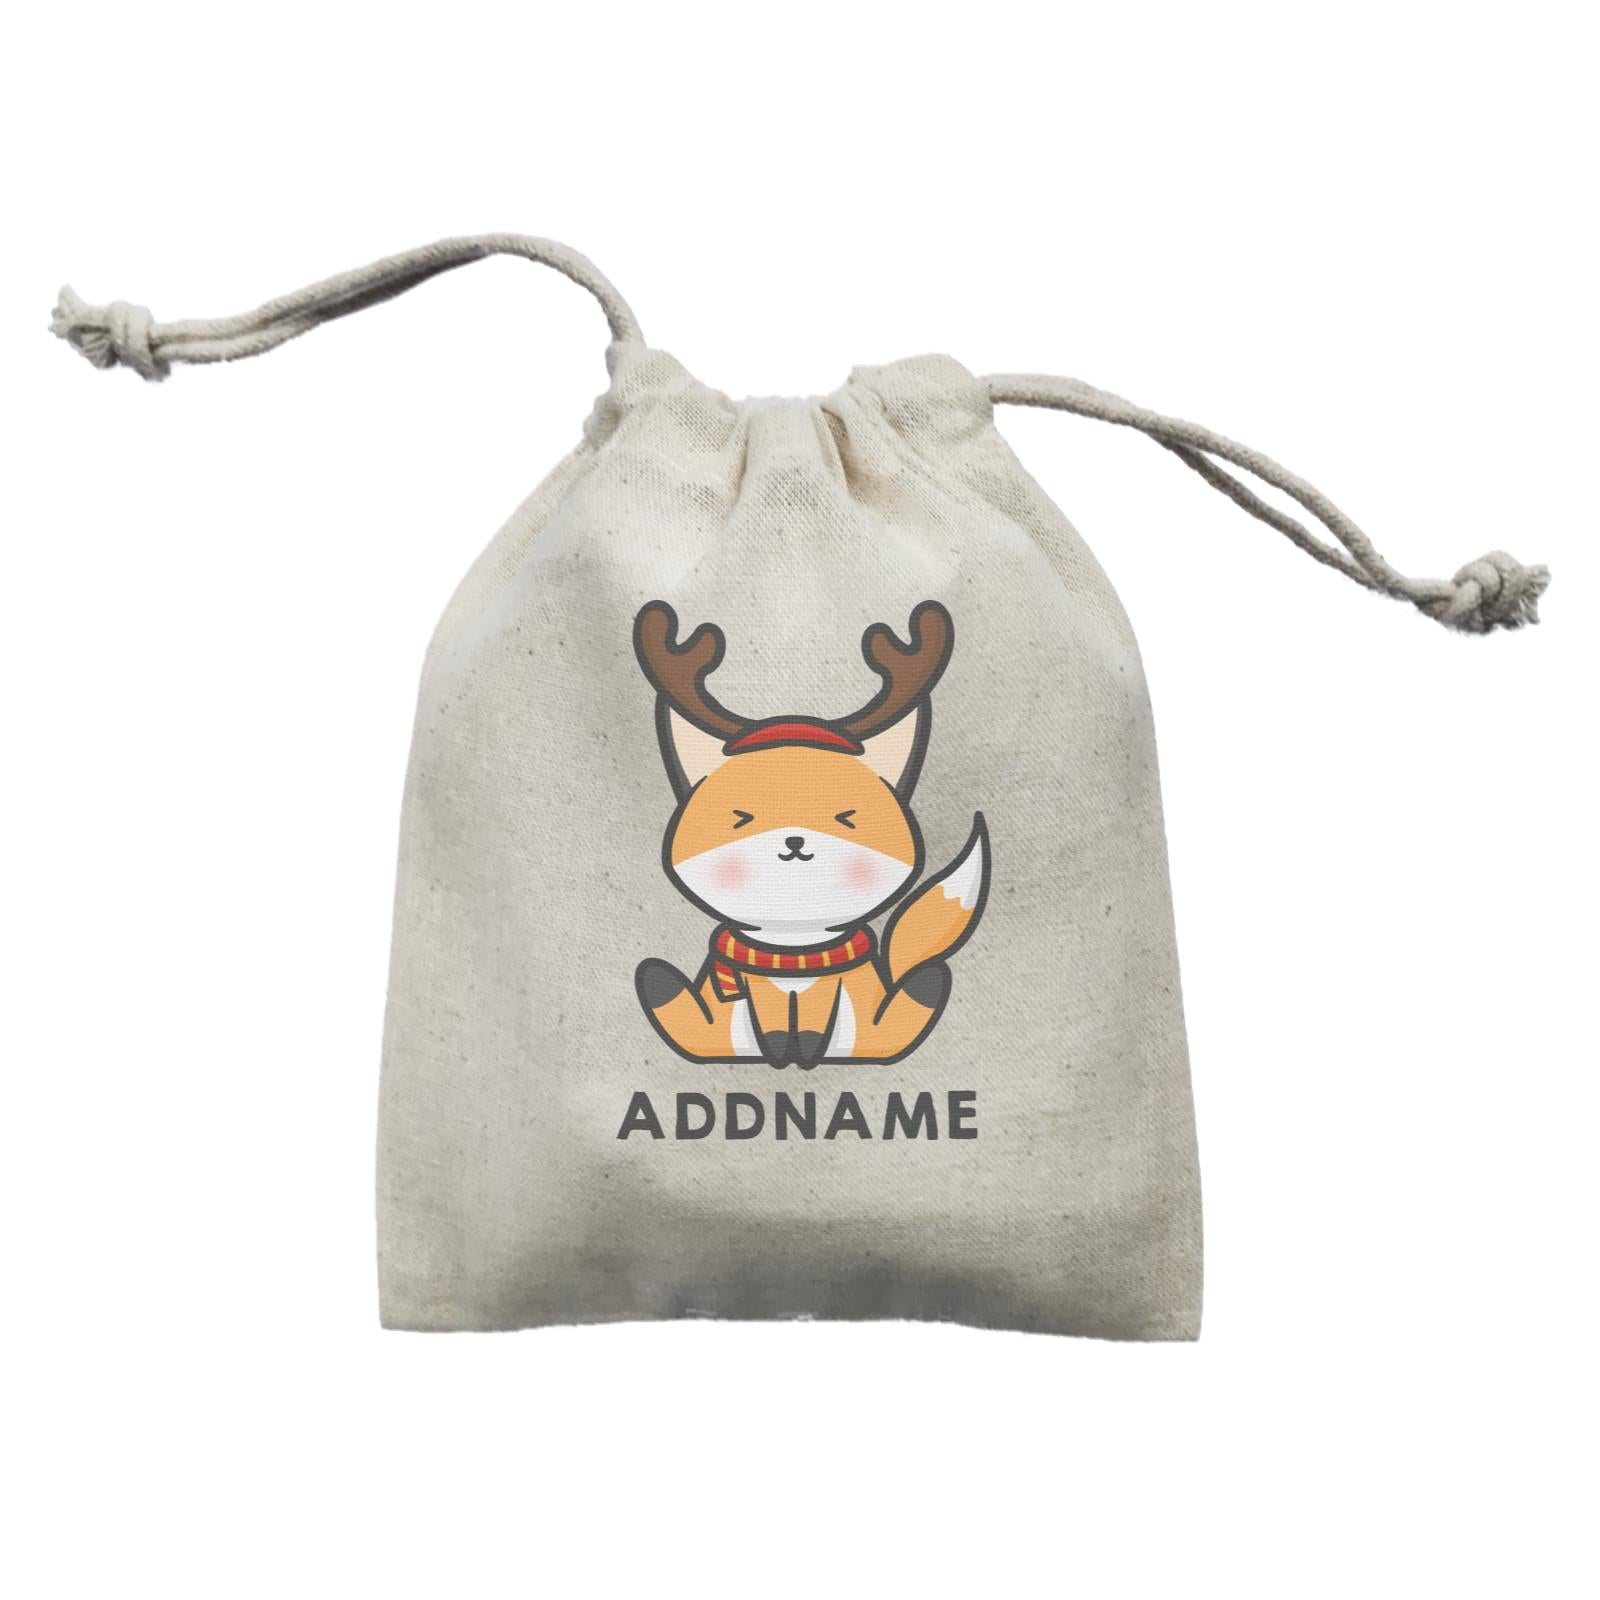 Xmas Cute Fox With Reindeer Antlers Addname Mini Accessories Mini Pouch